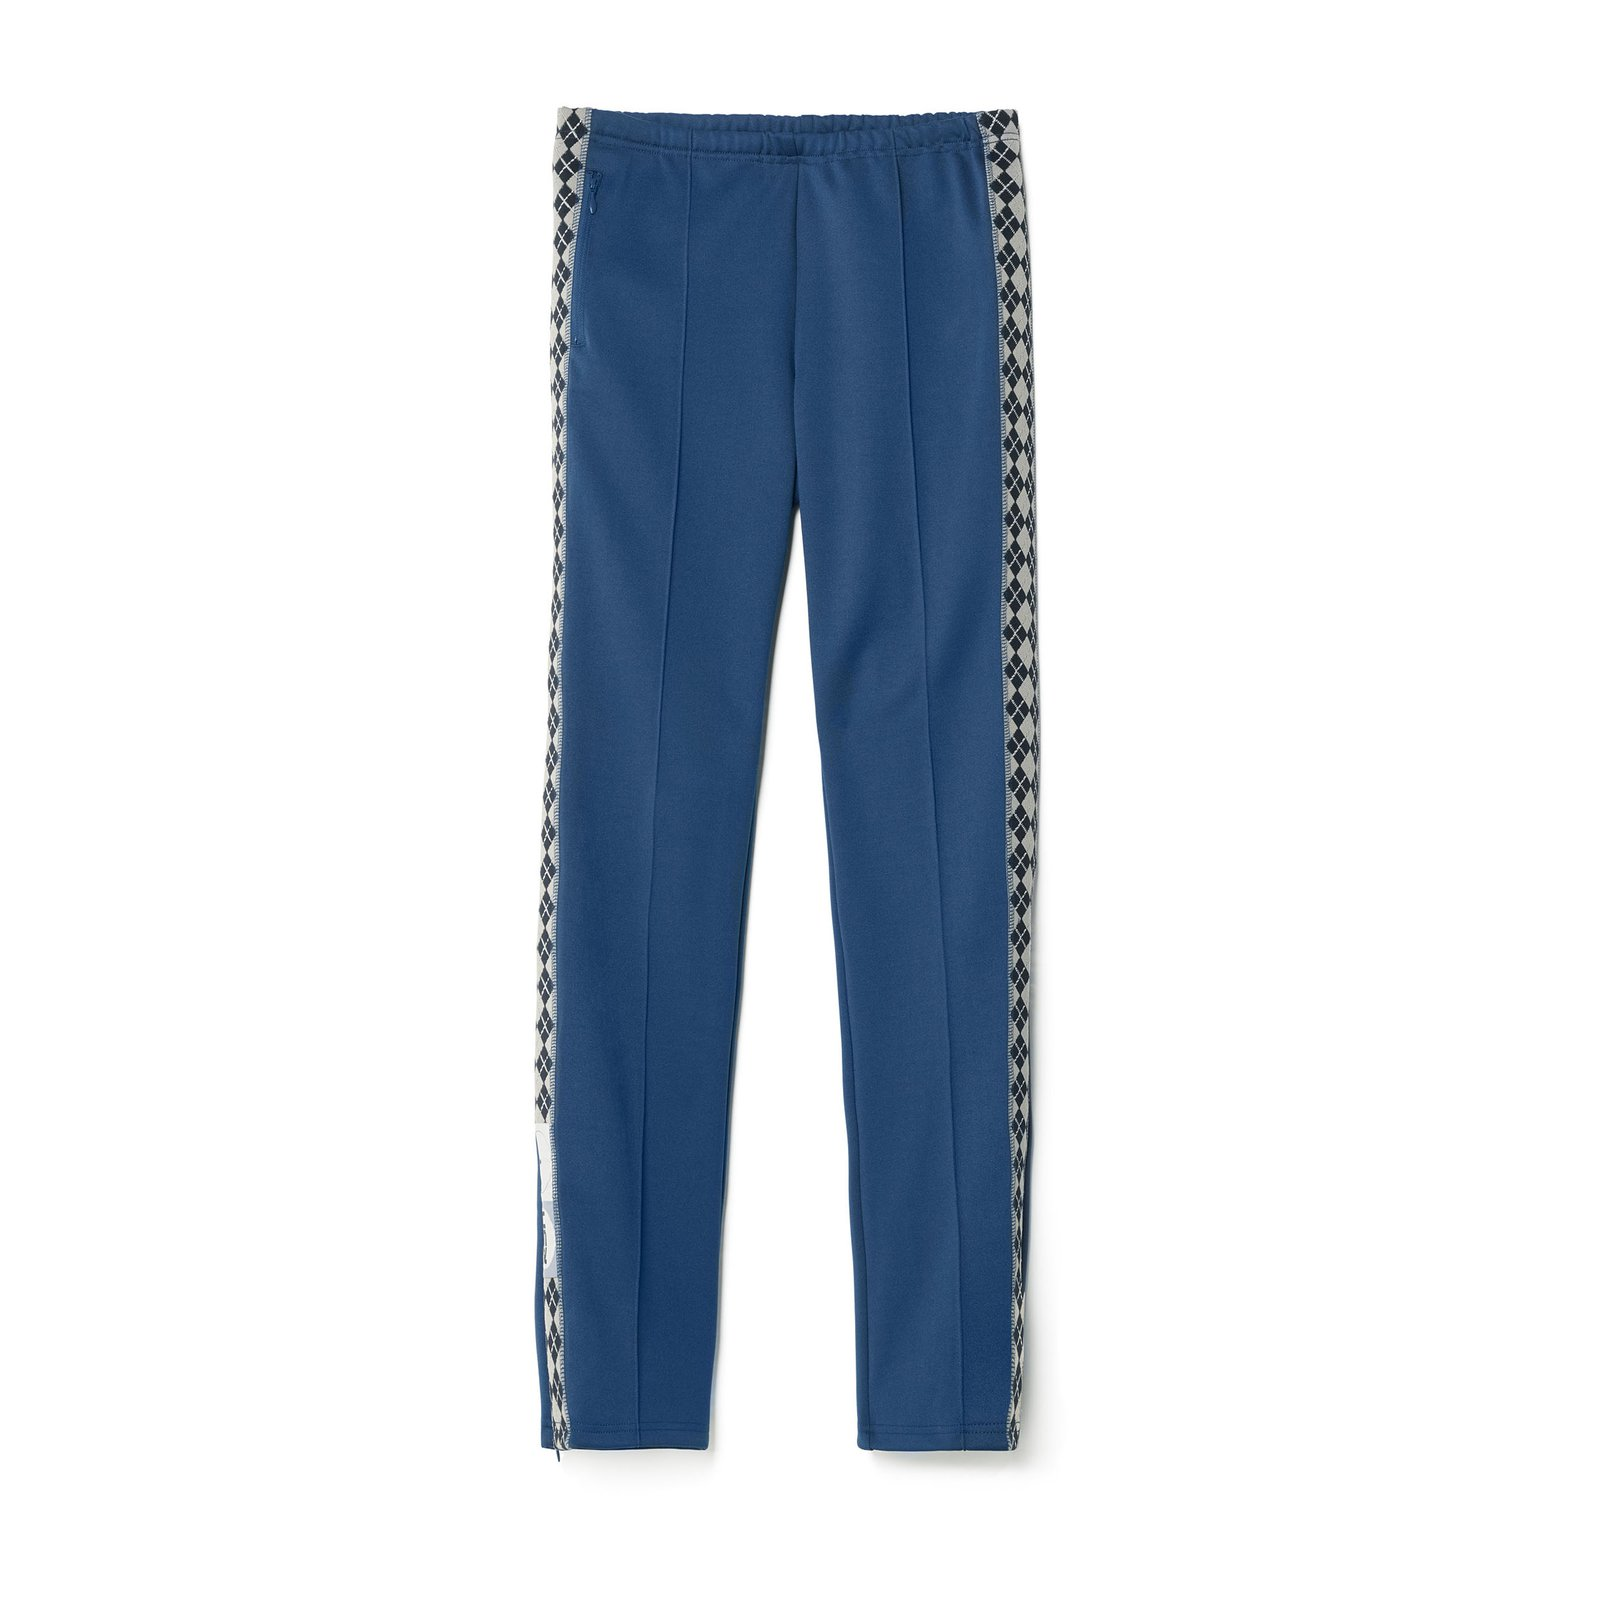 RBN VCT Pants